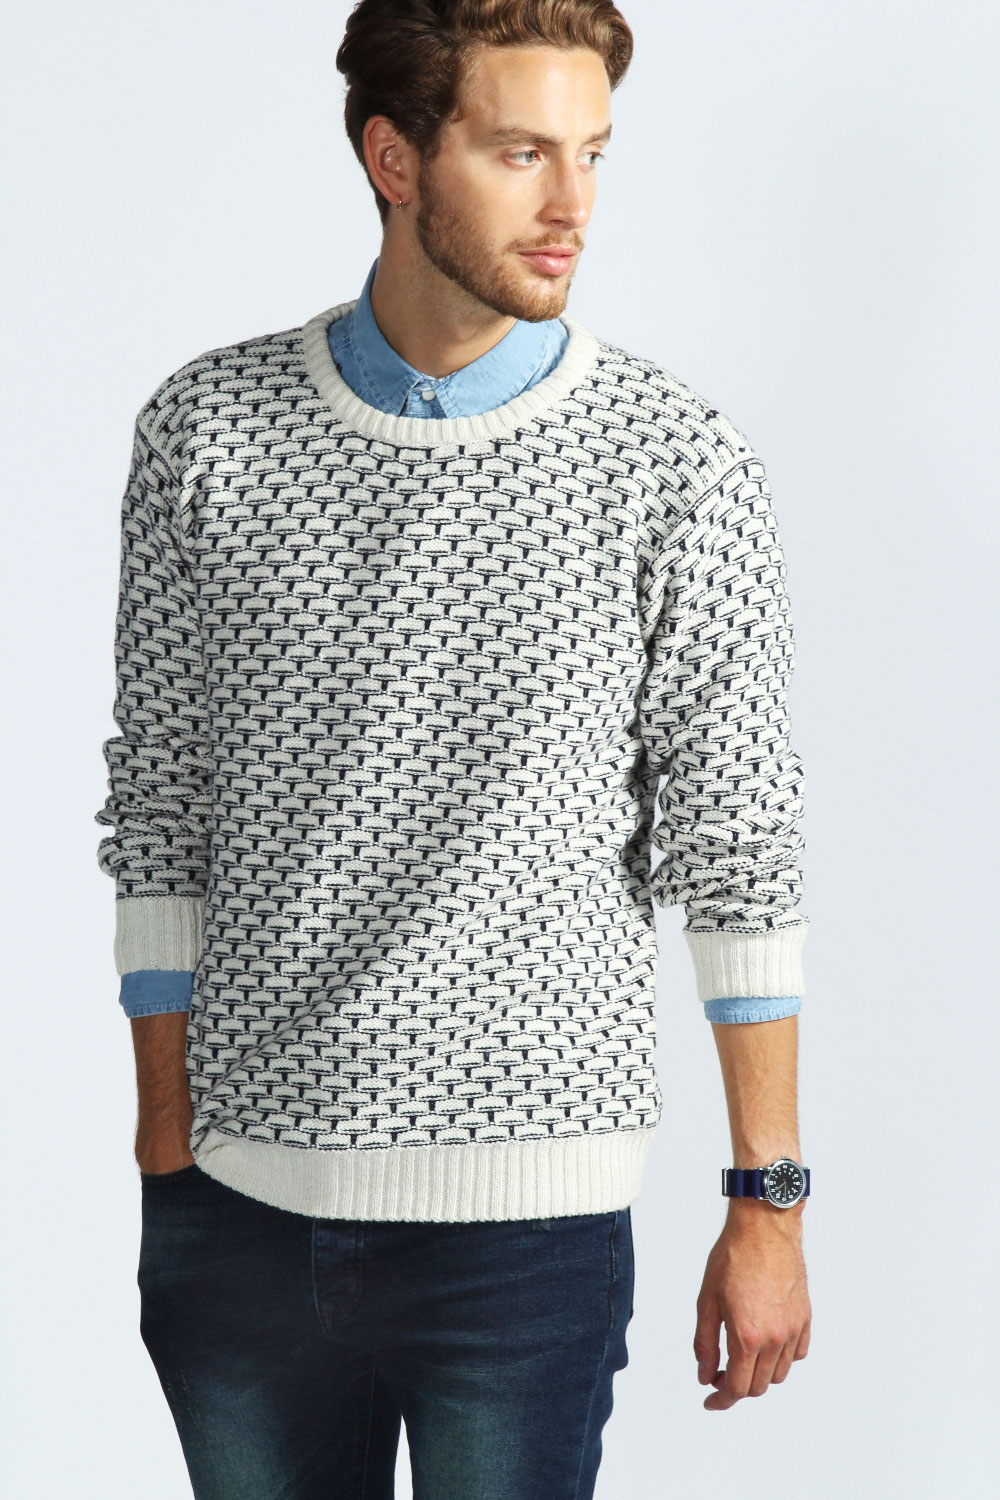 Boohoo-Mens-Crew-Drop-Stitch-Jumper-In-Ecru